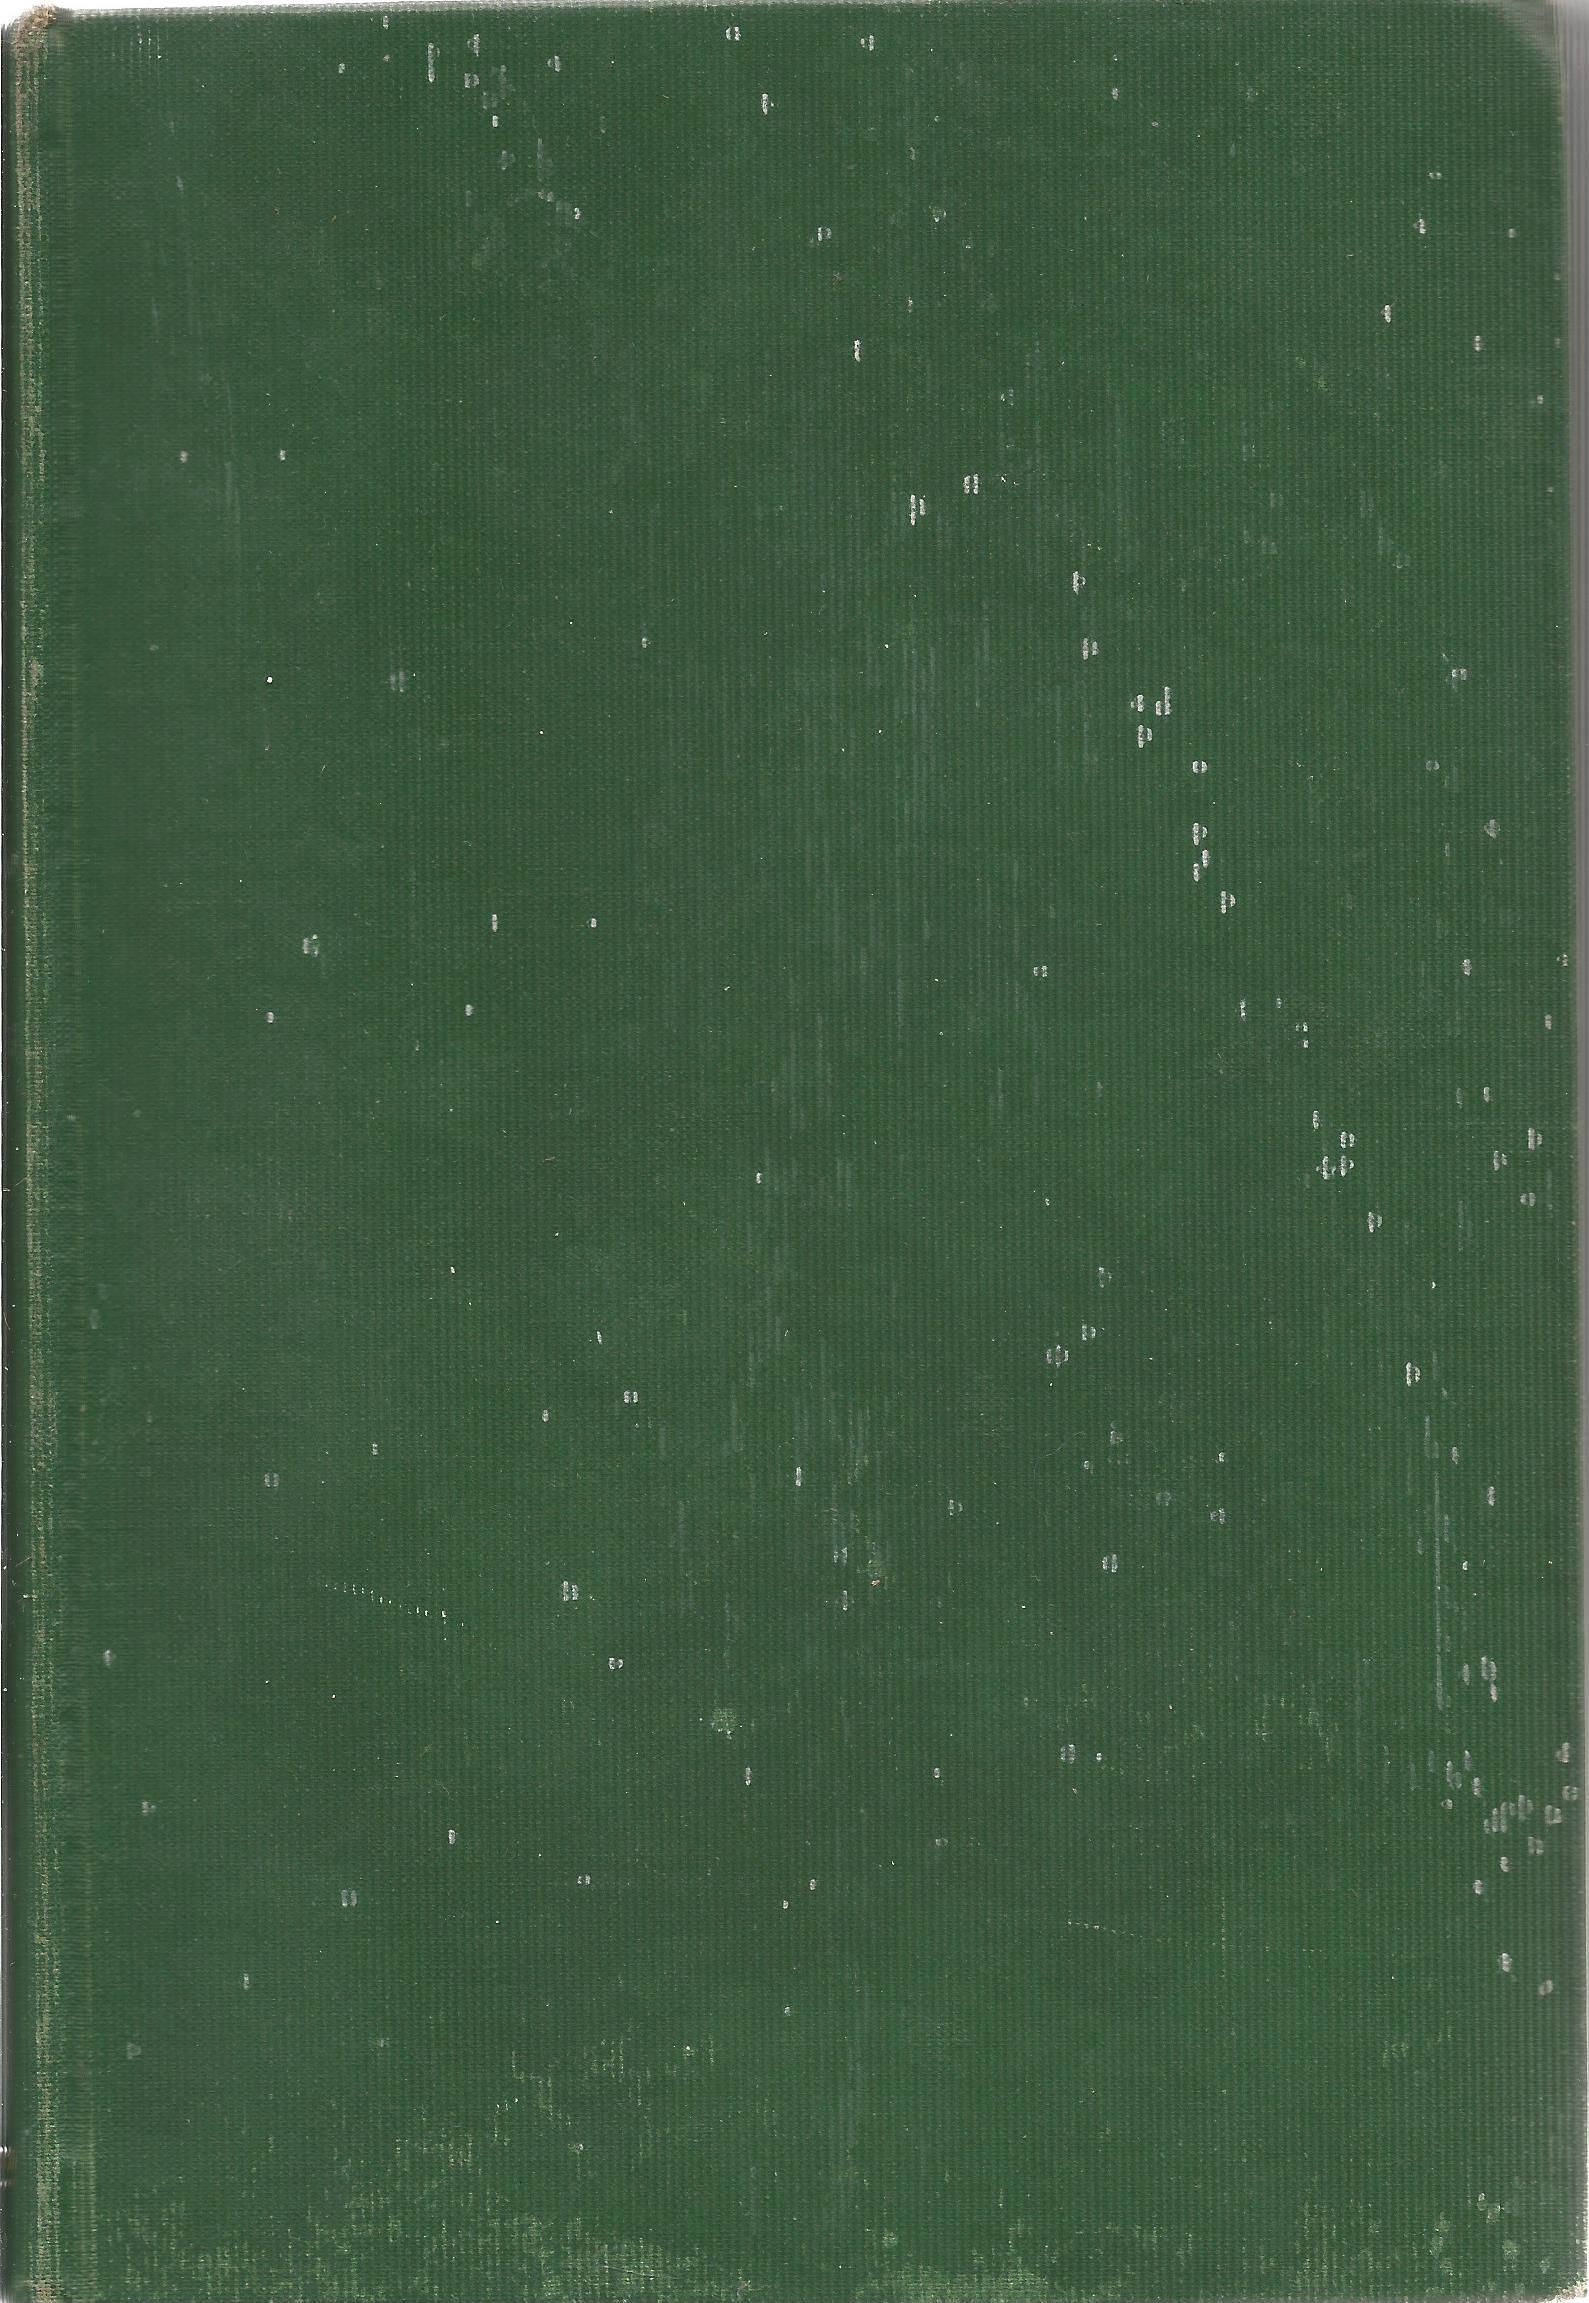 Portrait in a Mirror author signed vintage hardback book written by Charles Morgan. Published in